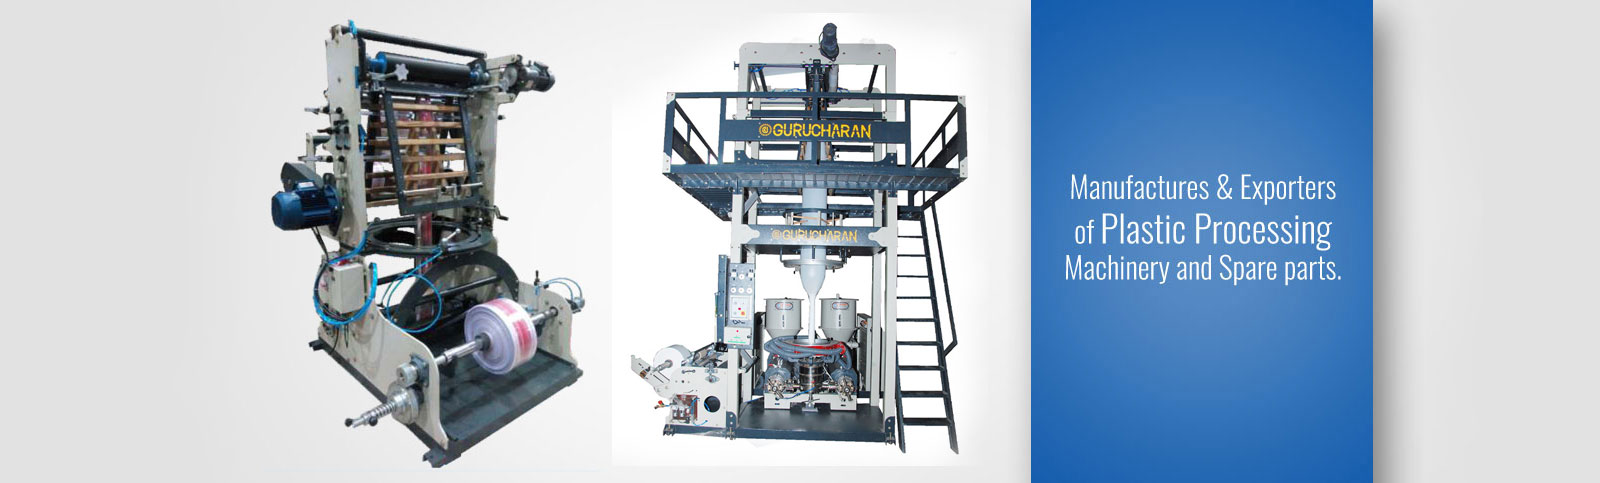 Exporters  and Manufacturing of Plastic processing Machines, plastic processing machinery manufacturer , Blown Film Excluders, Blown Film Plant, HDPE, LDPE, LDPP, plastic processing machinery in india